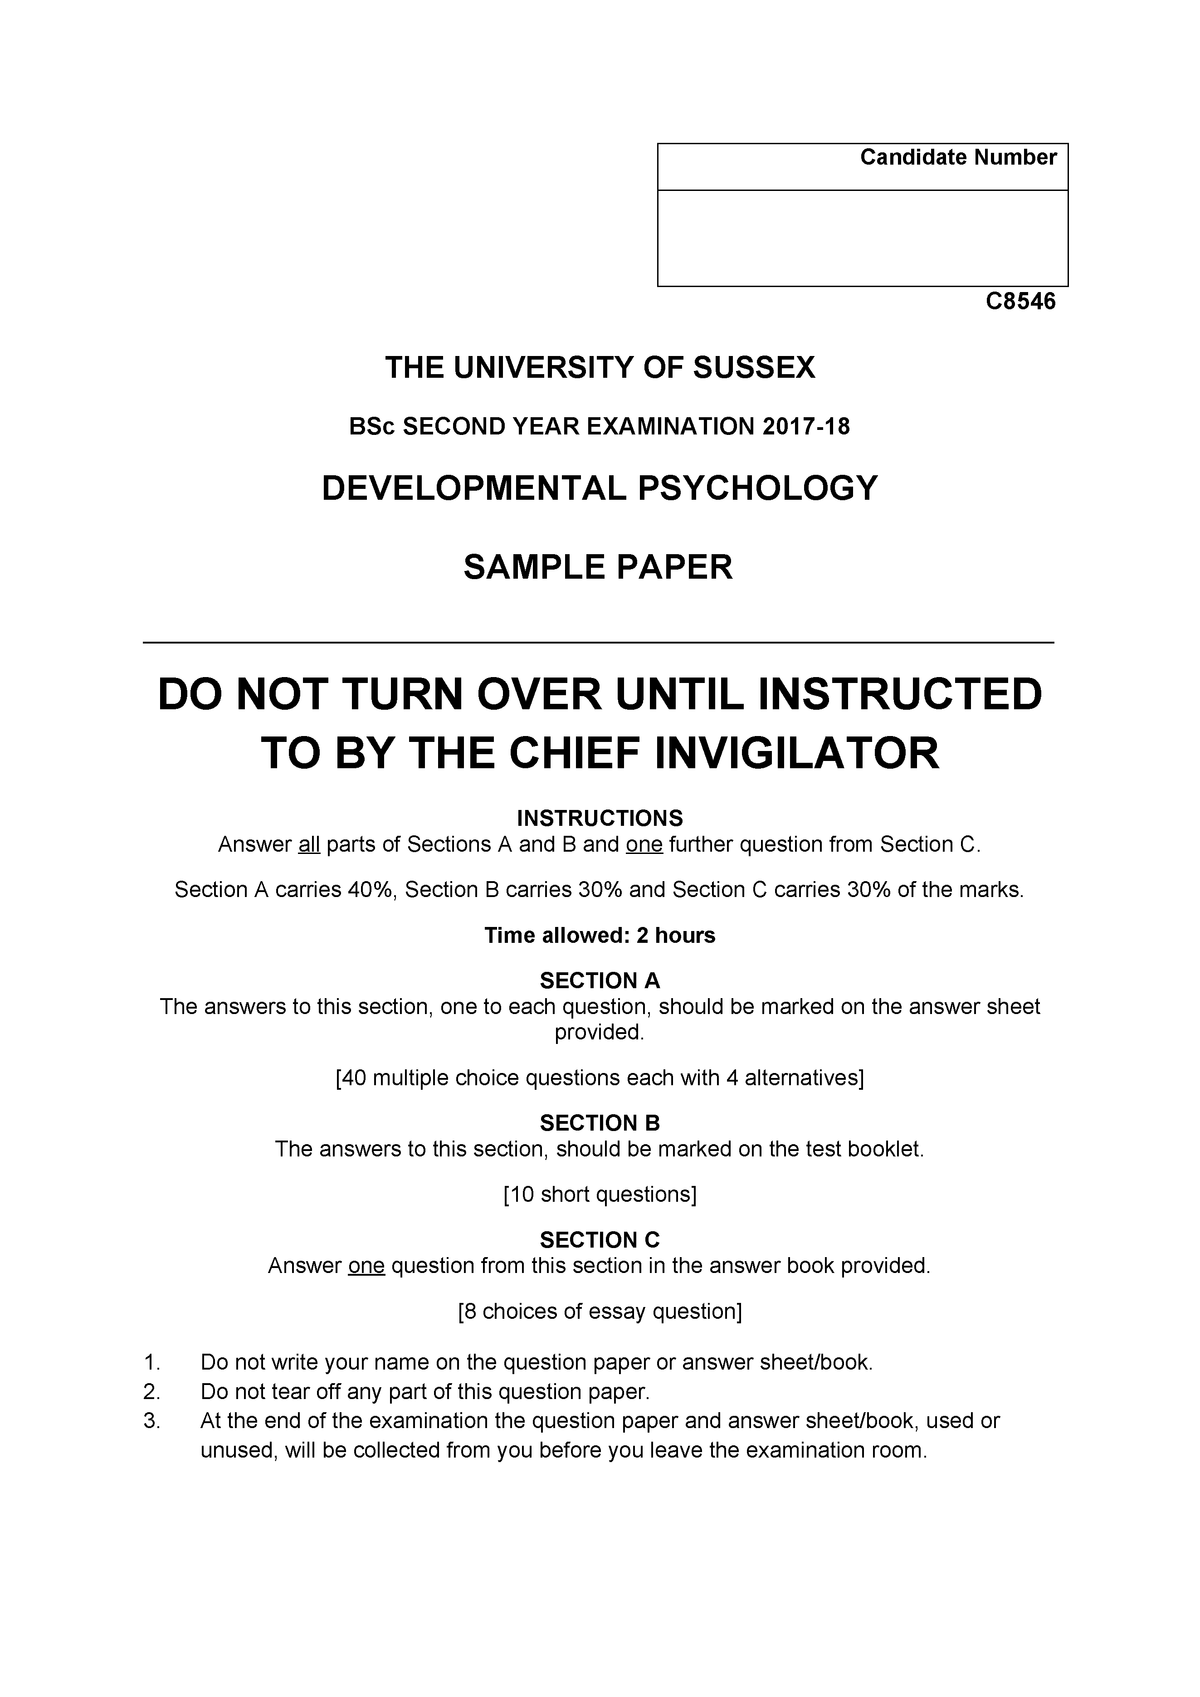 C8546 Developmental Psychology 2017-18 Sample with Answers